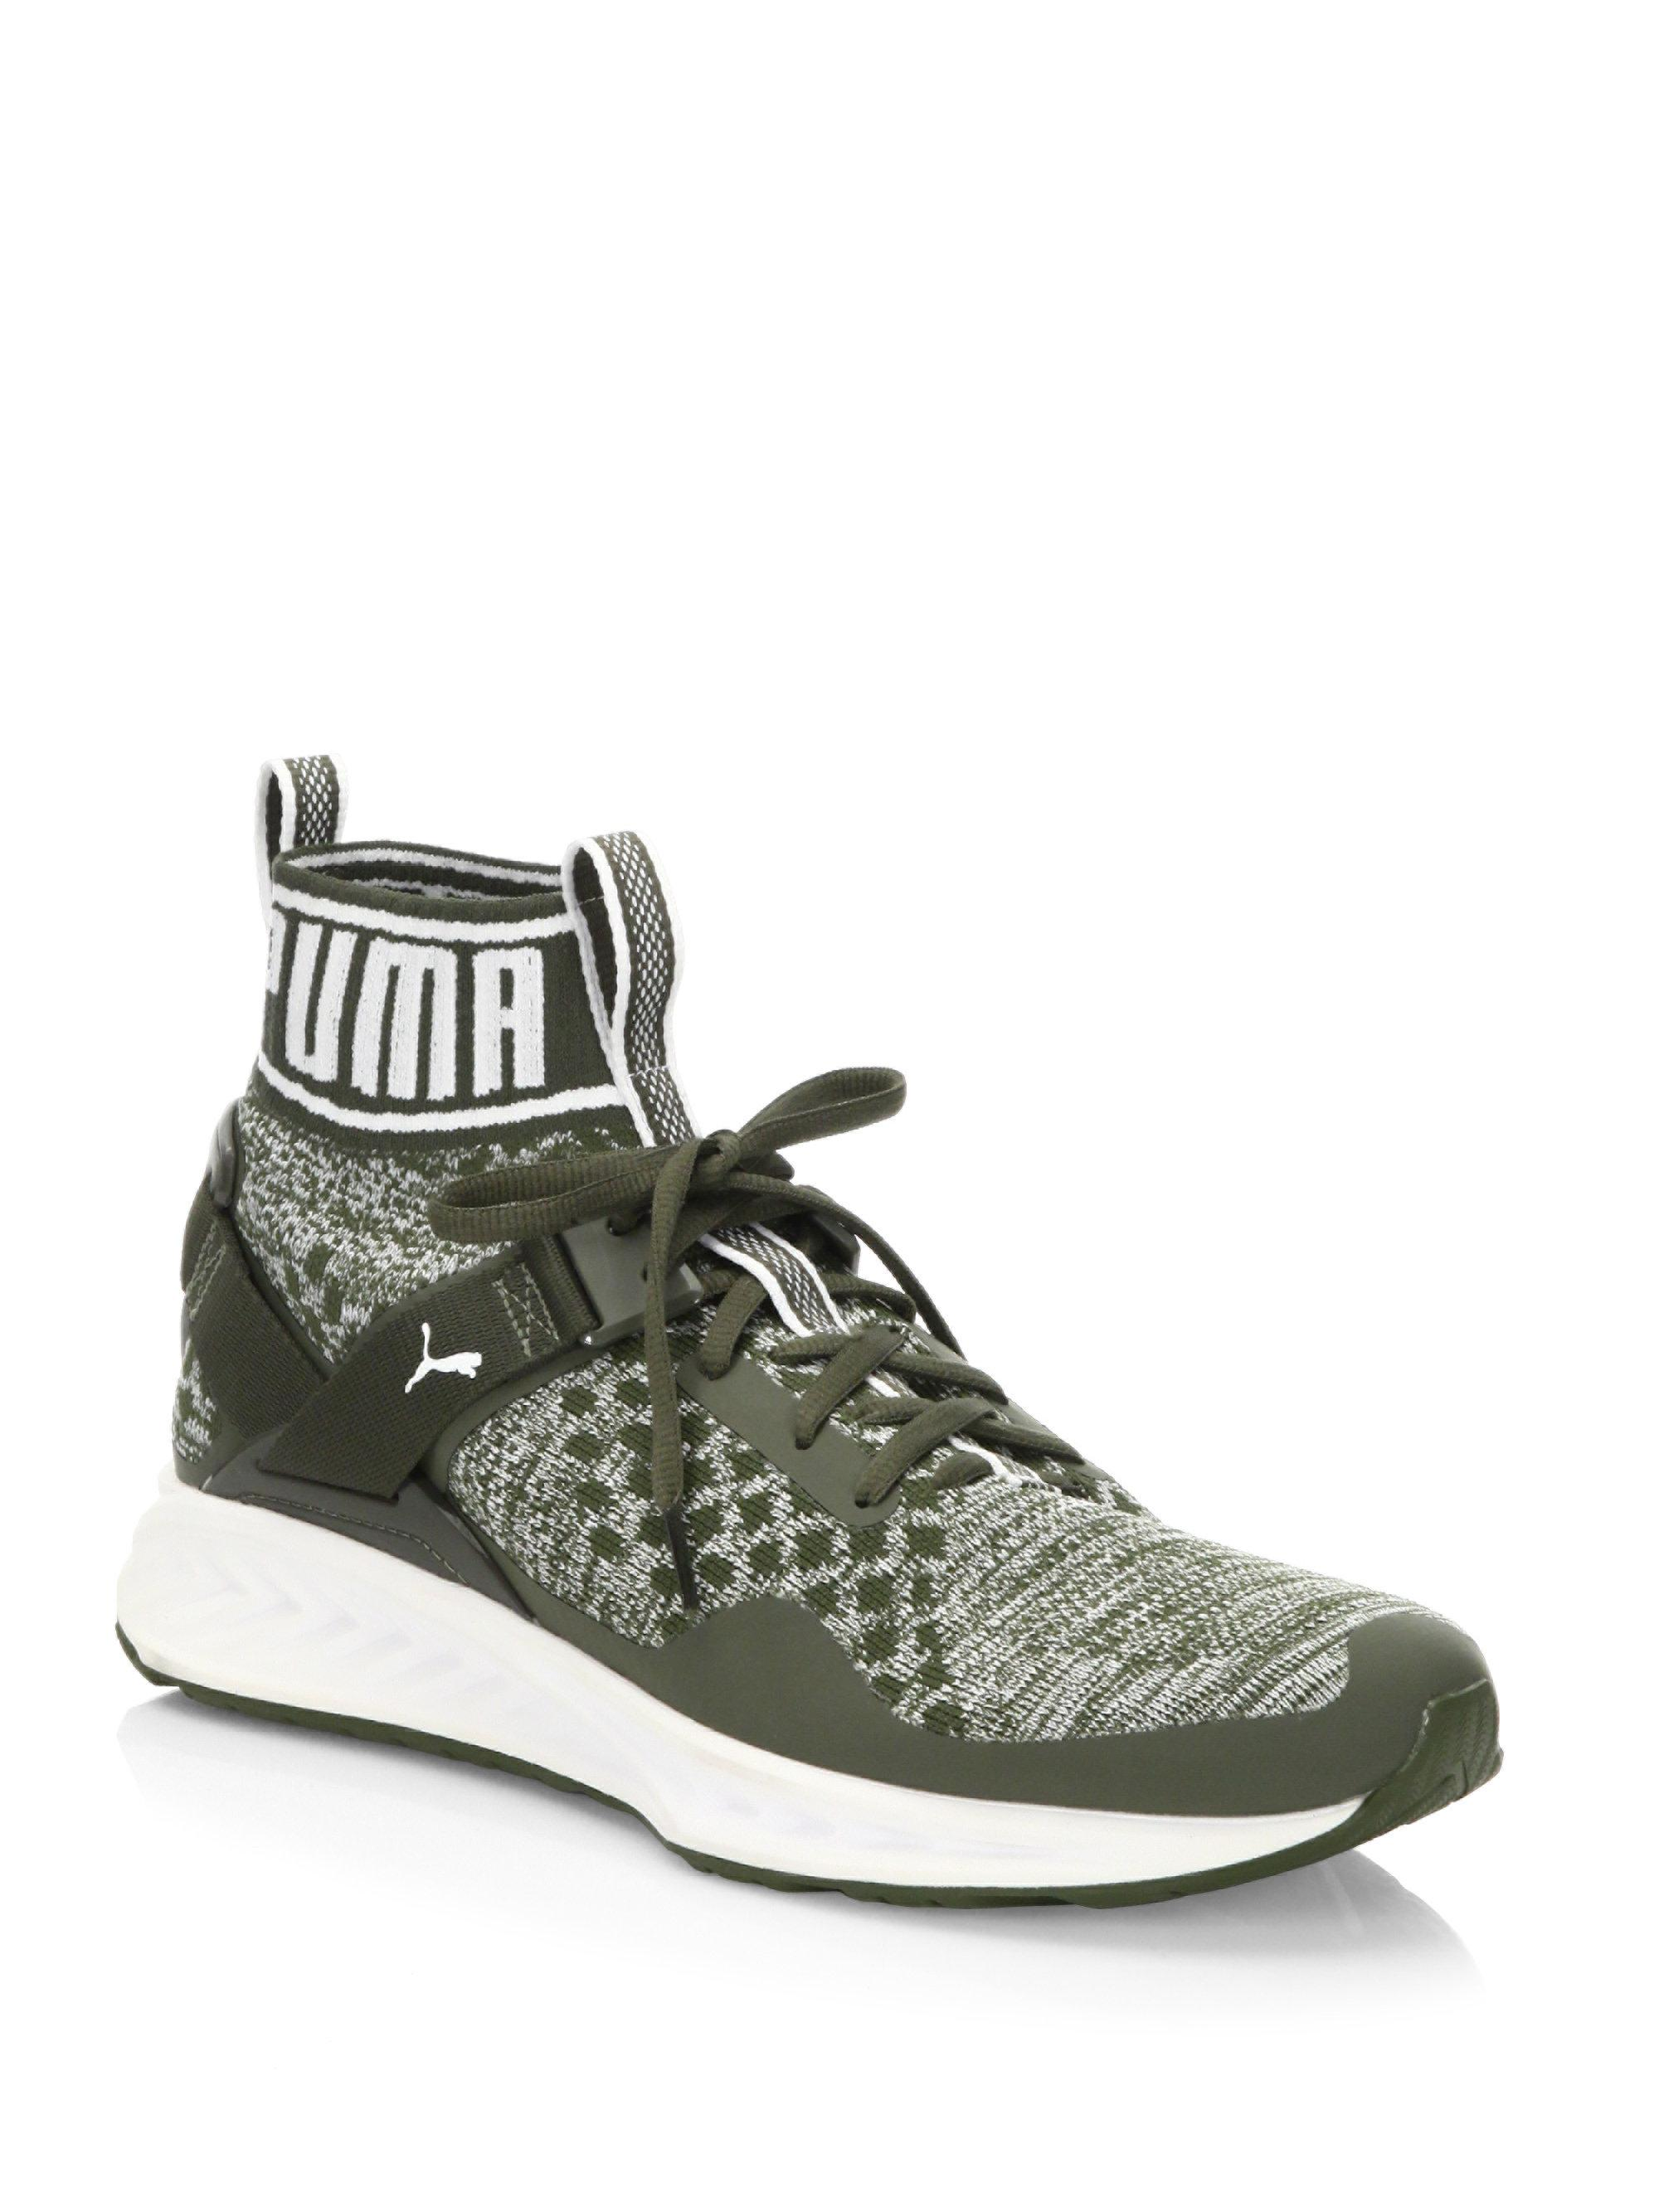 bf18db7547fc Lyst - PUMA Ignite Evoknit High-top Sneakers in Green for Men